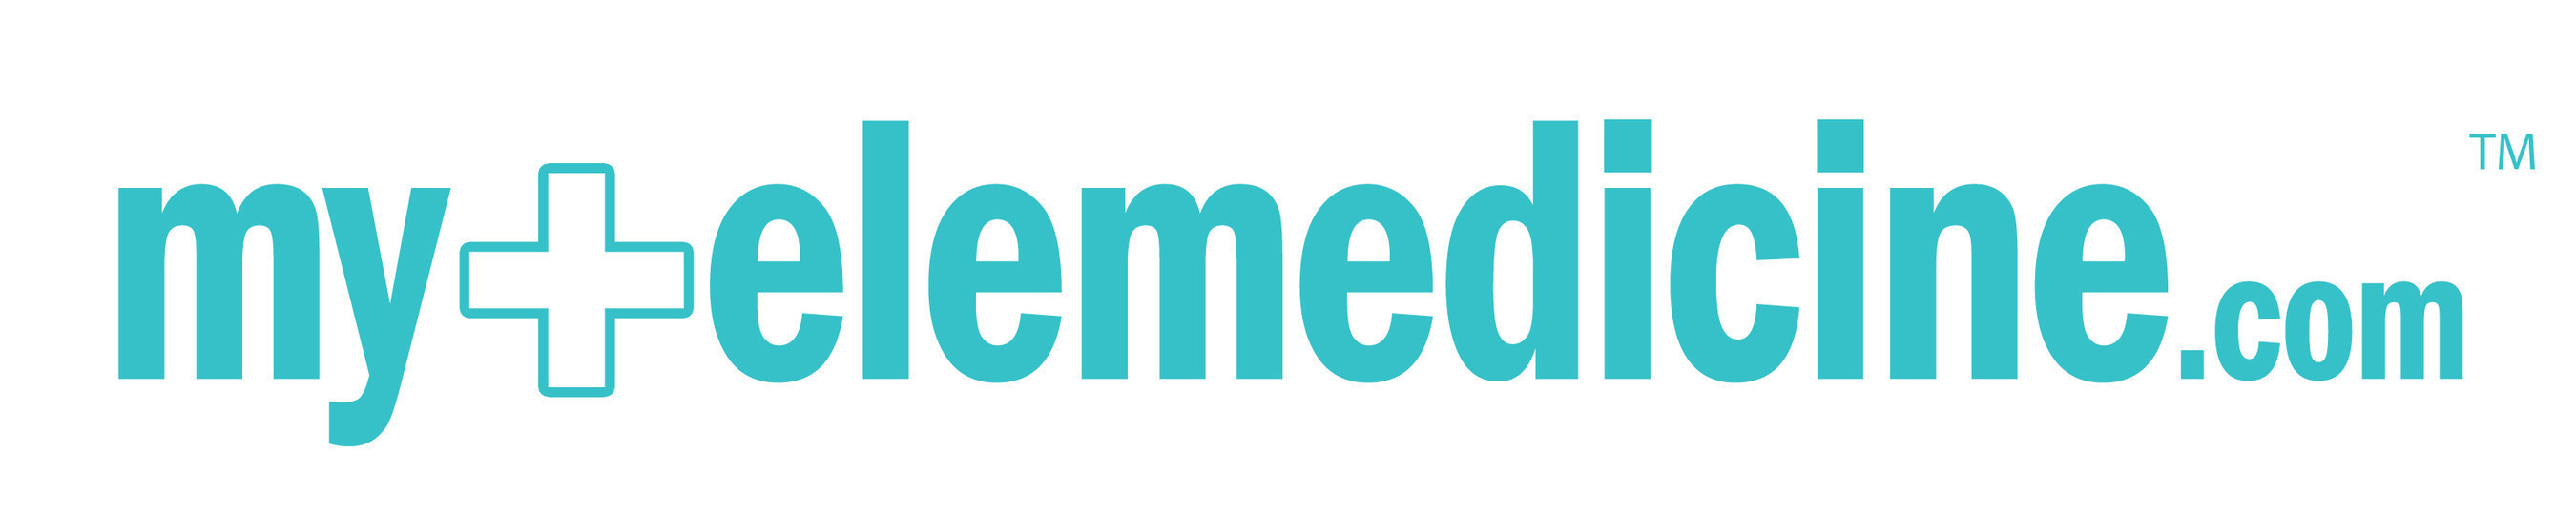 MyTelemedicine.com Launches Web and Mobile Telehealth Advanced API, Which Enables Providers to Integrate Real-Time Physician Access into Their Applications